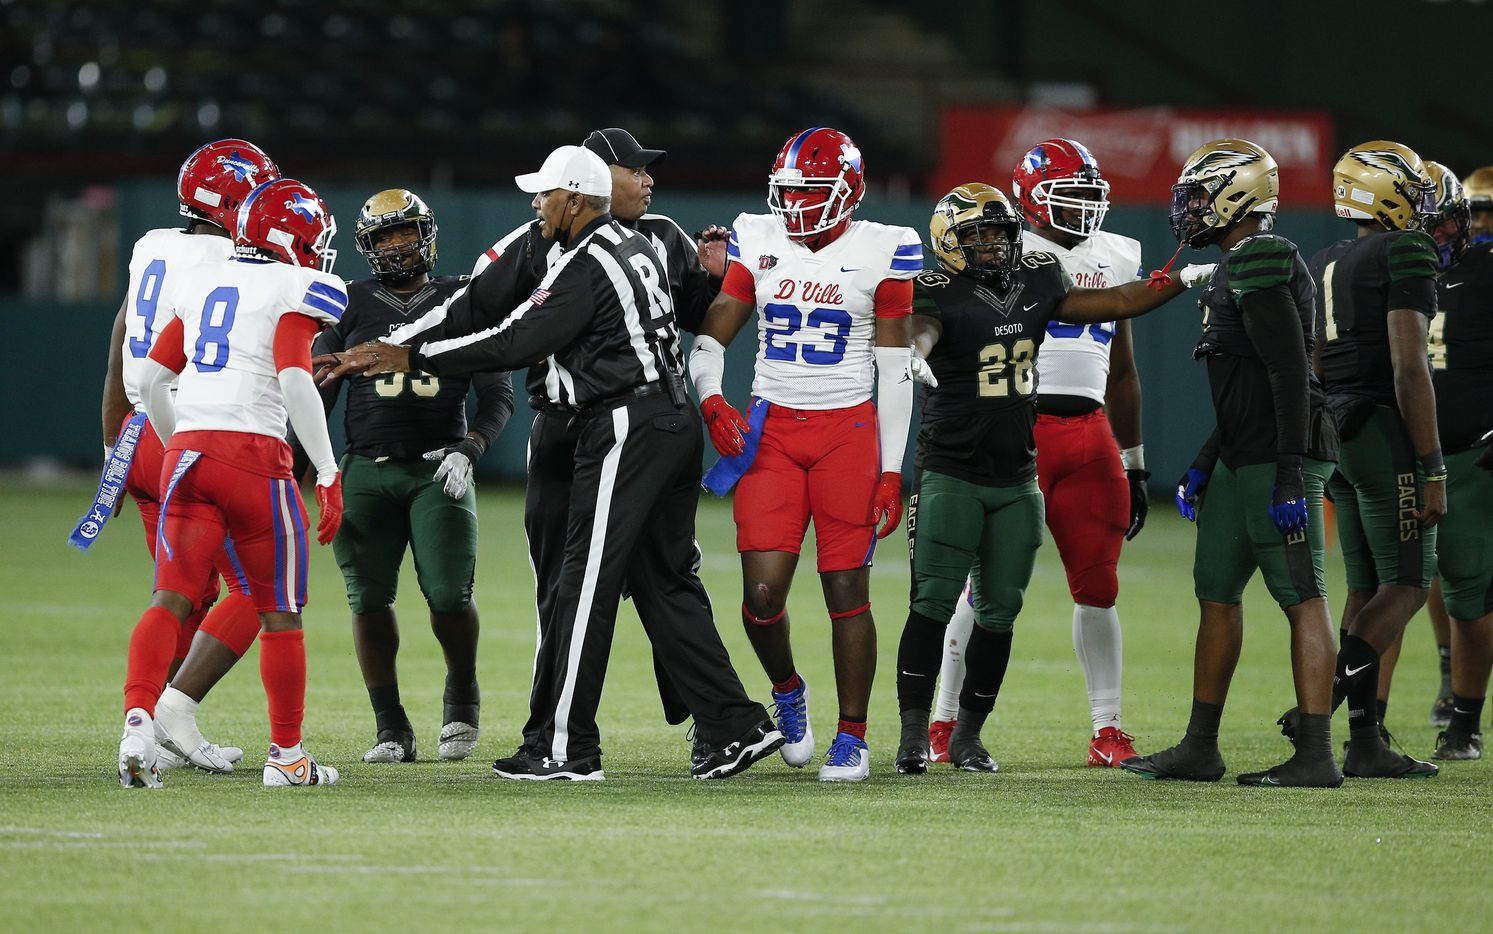 Referees separate Duncanville and DeSoto players after a skirmish between plays during the first half of a Class 6A Division I Region II final high school football game, Saturday, January 2, 2021.  Duncanville won 56-28. (Brandon Wade/Special Contributor)